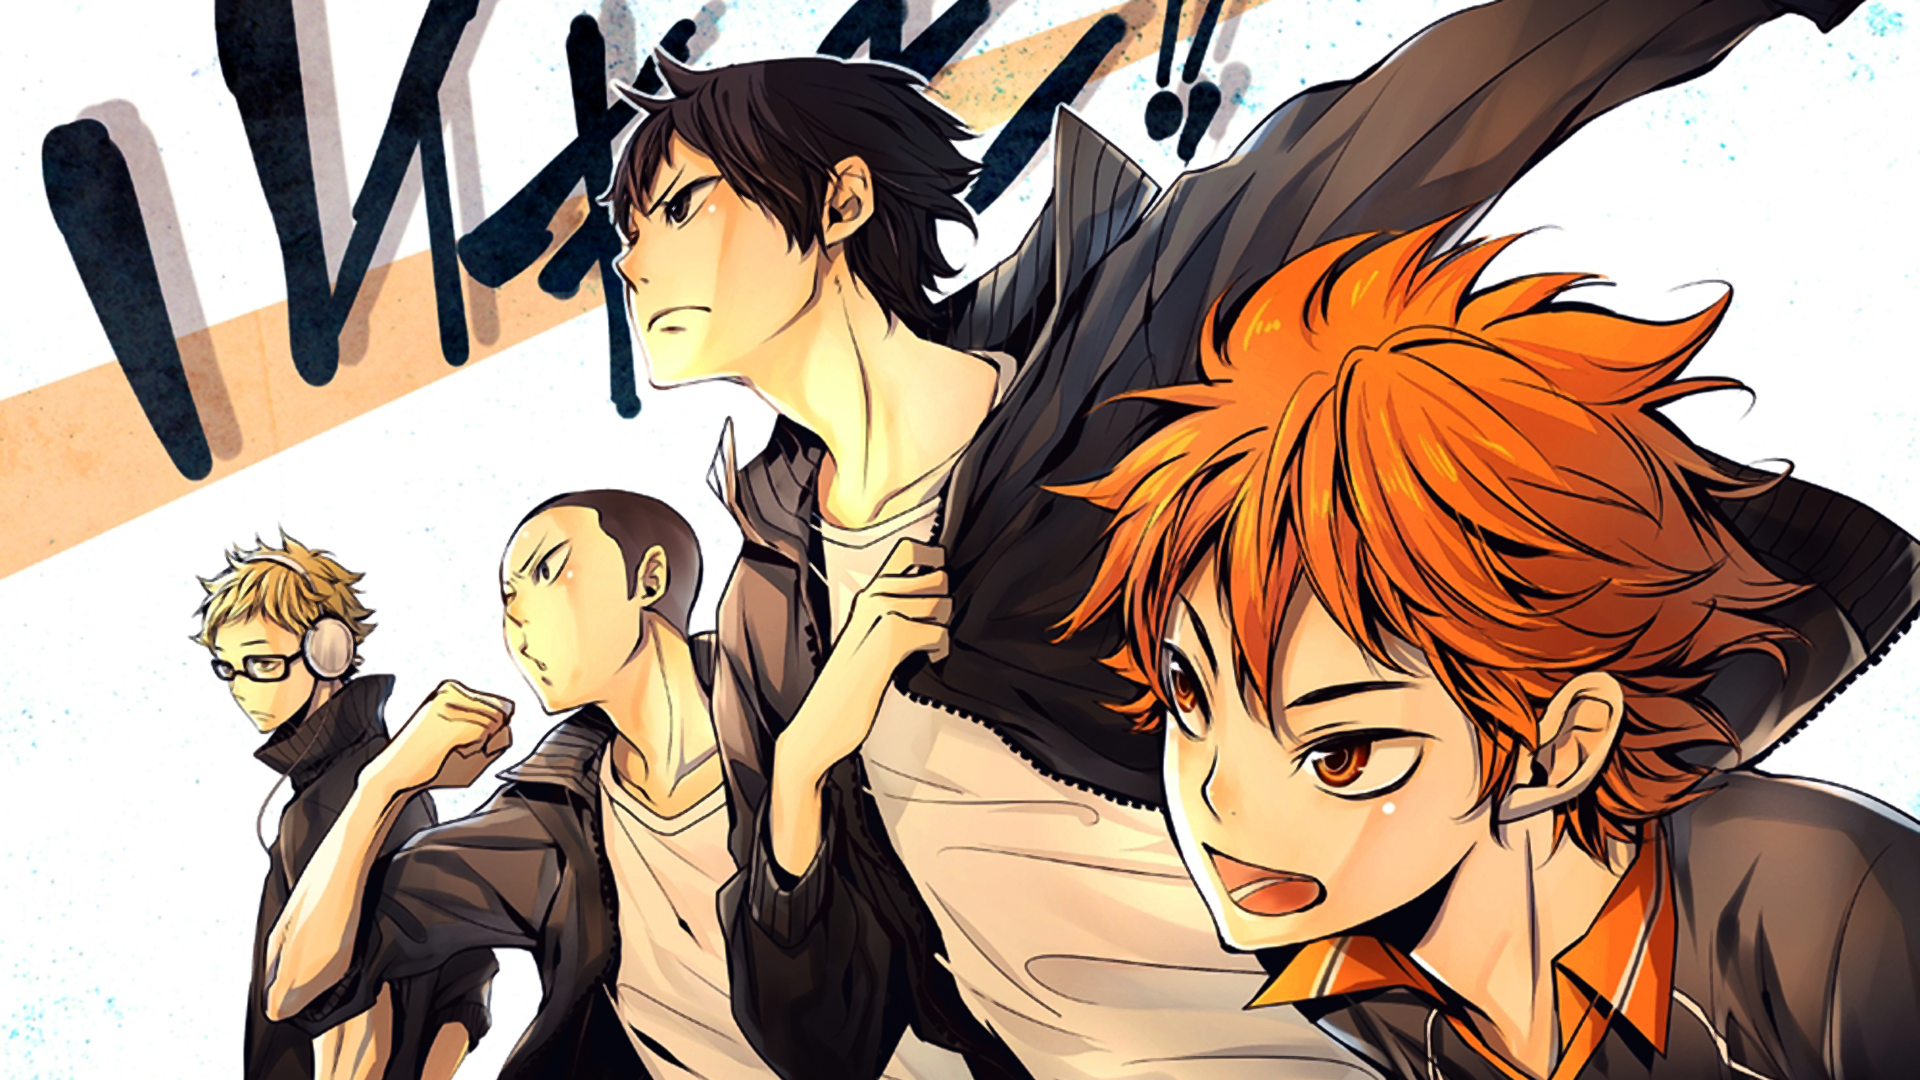 Haikyuu Anime 1920x1080 Wallpaper HD